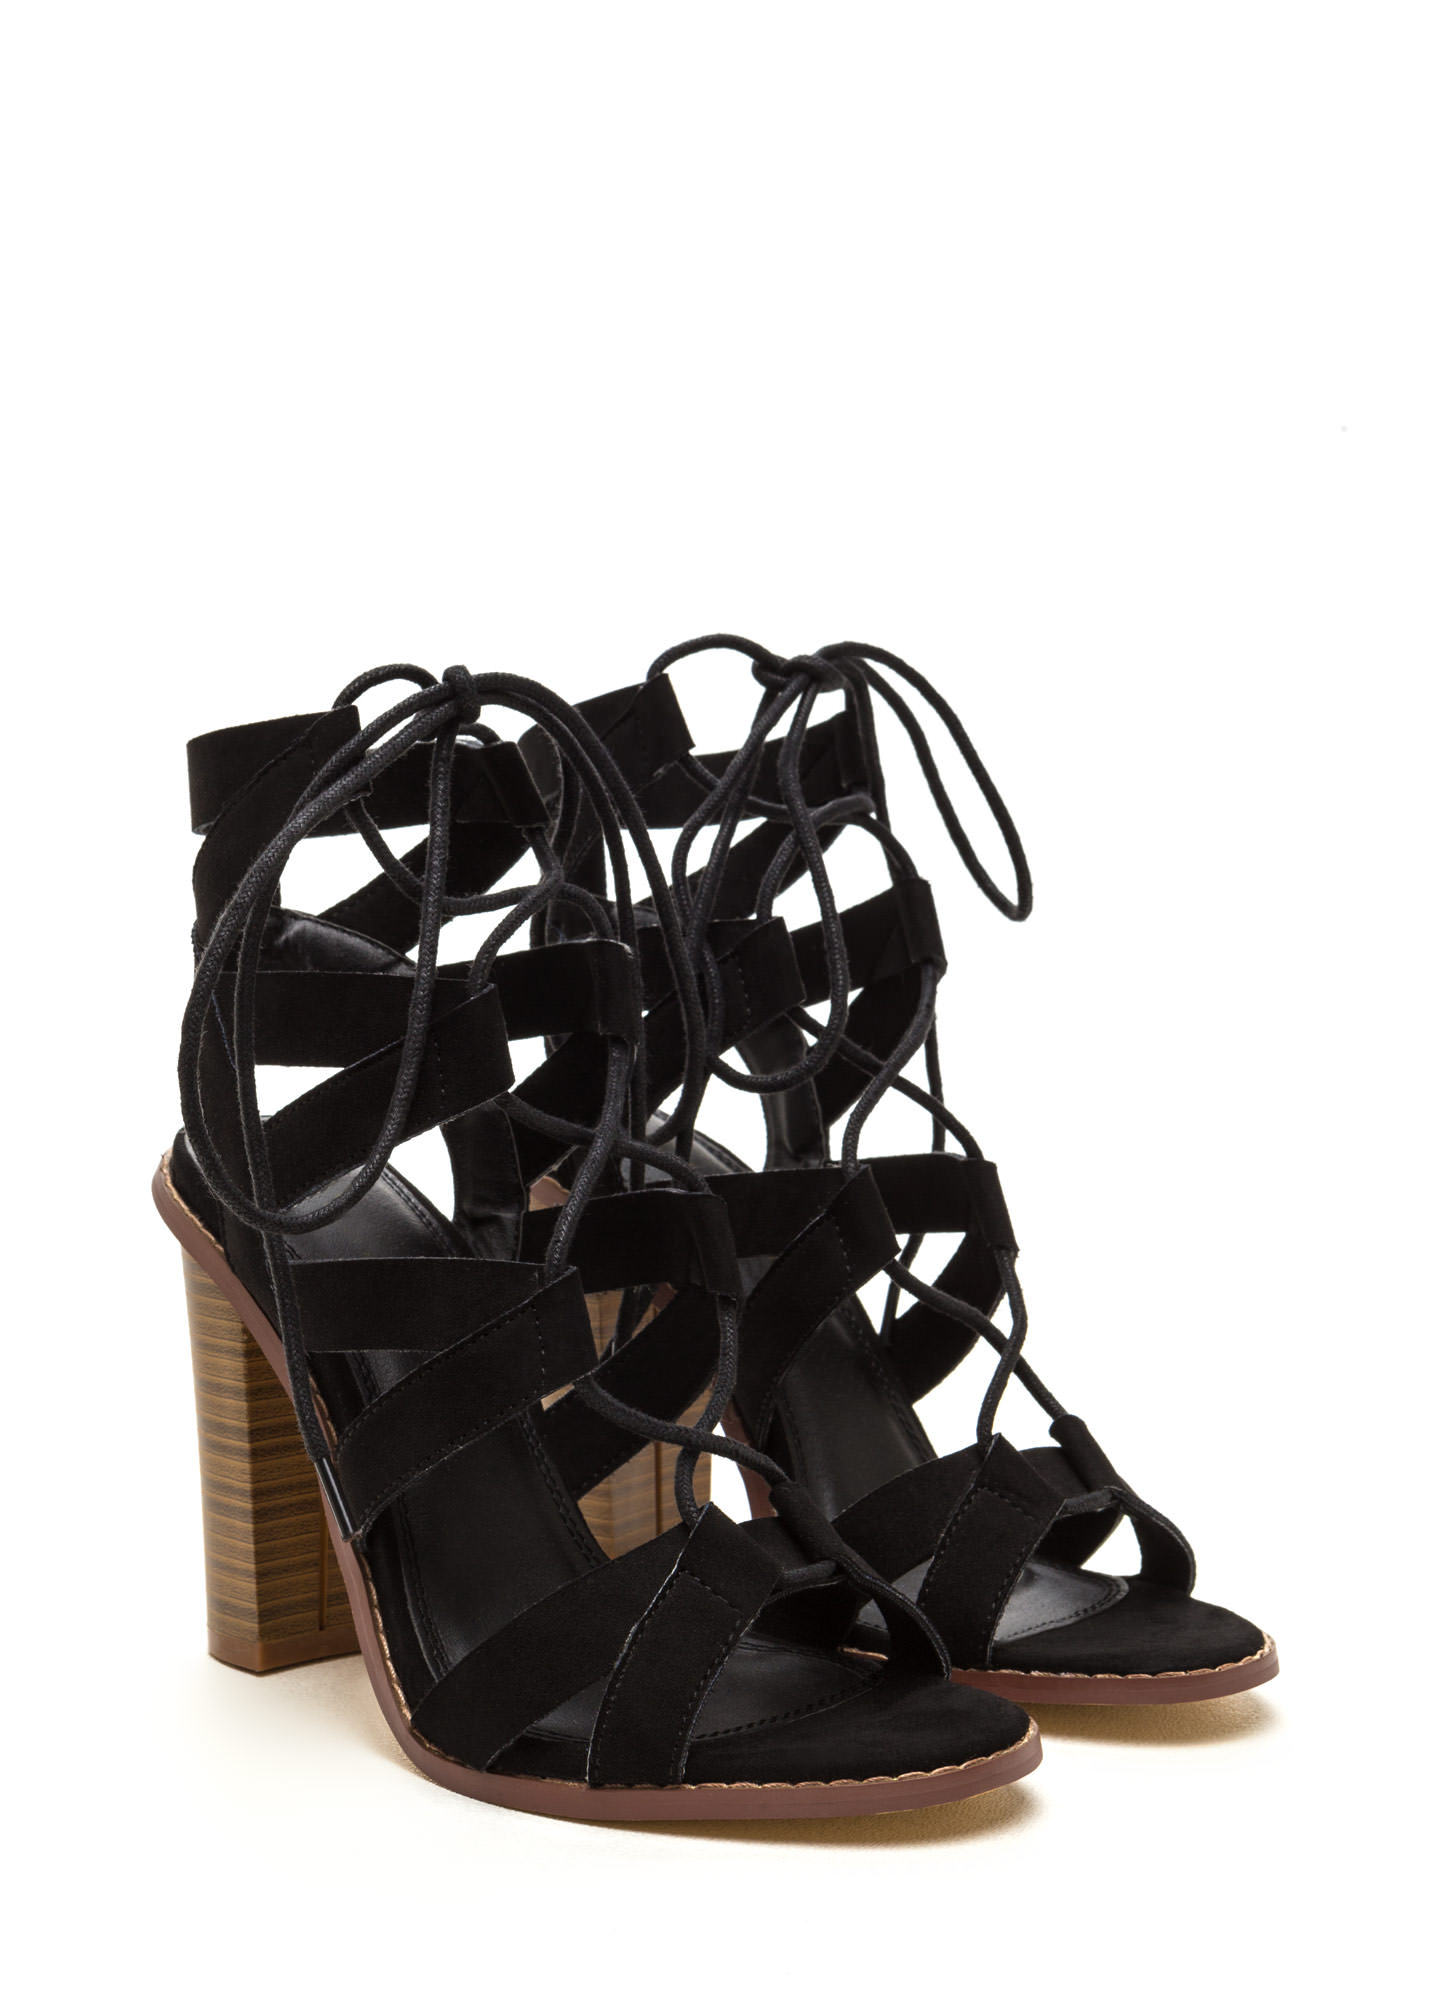 Born To V Lace-Up Heels BLACK